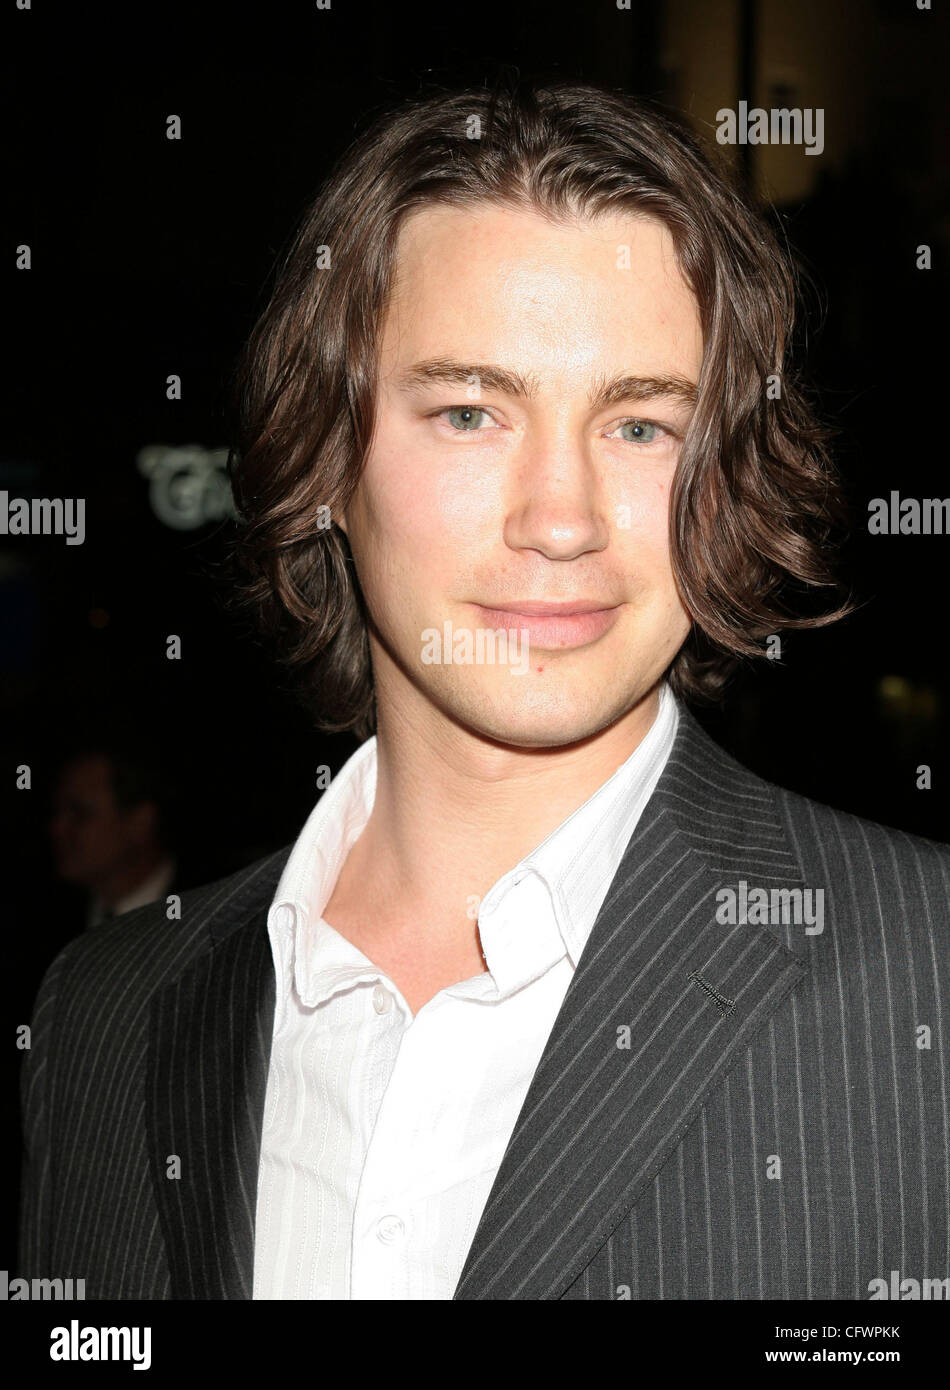 Tom Wisdom Premiere 20 Held High Resolution Stock Photography and ...